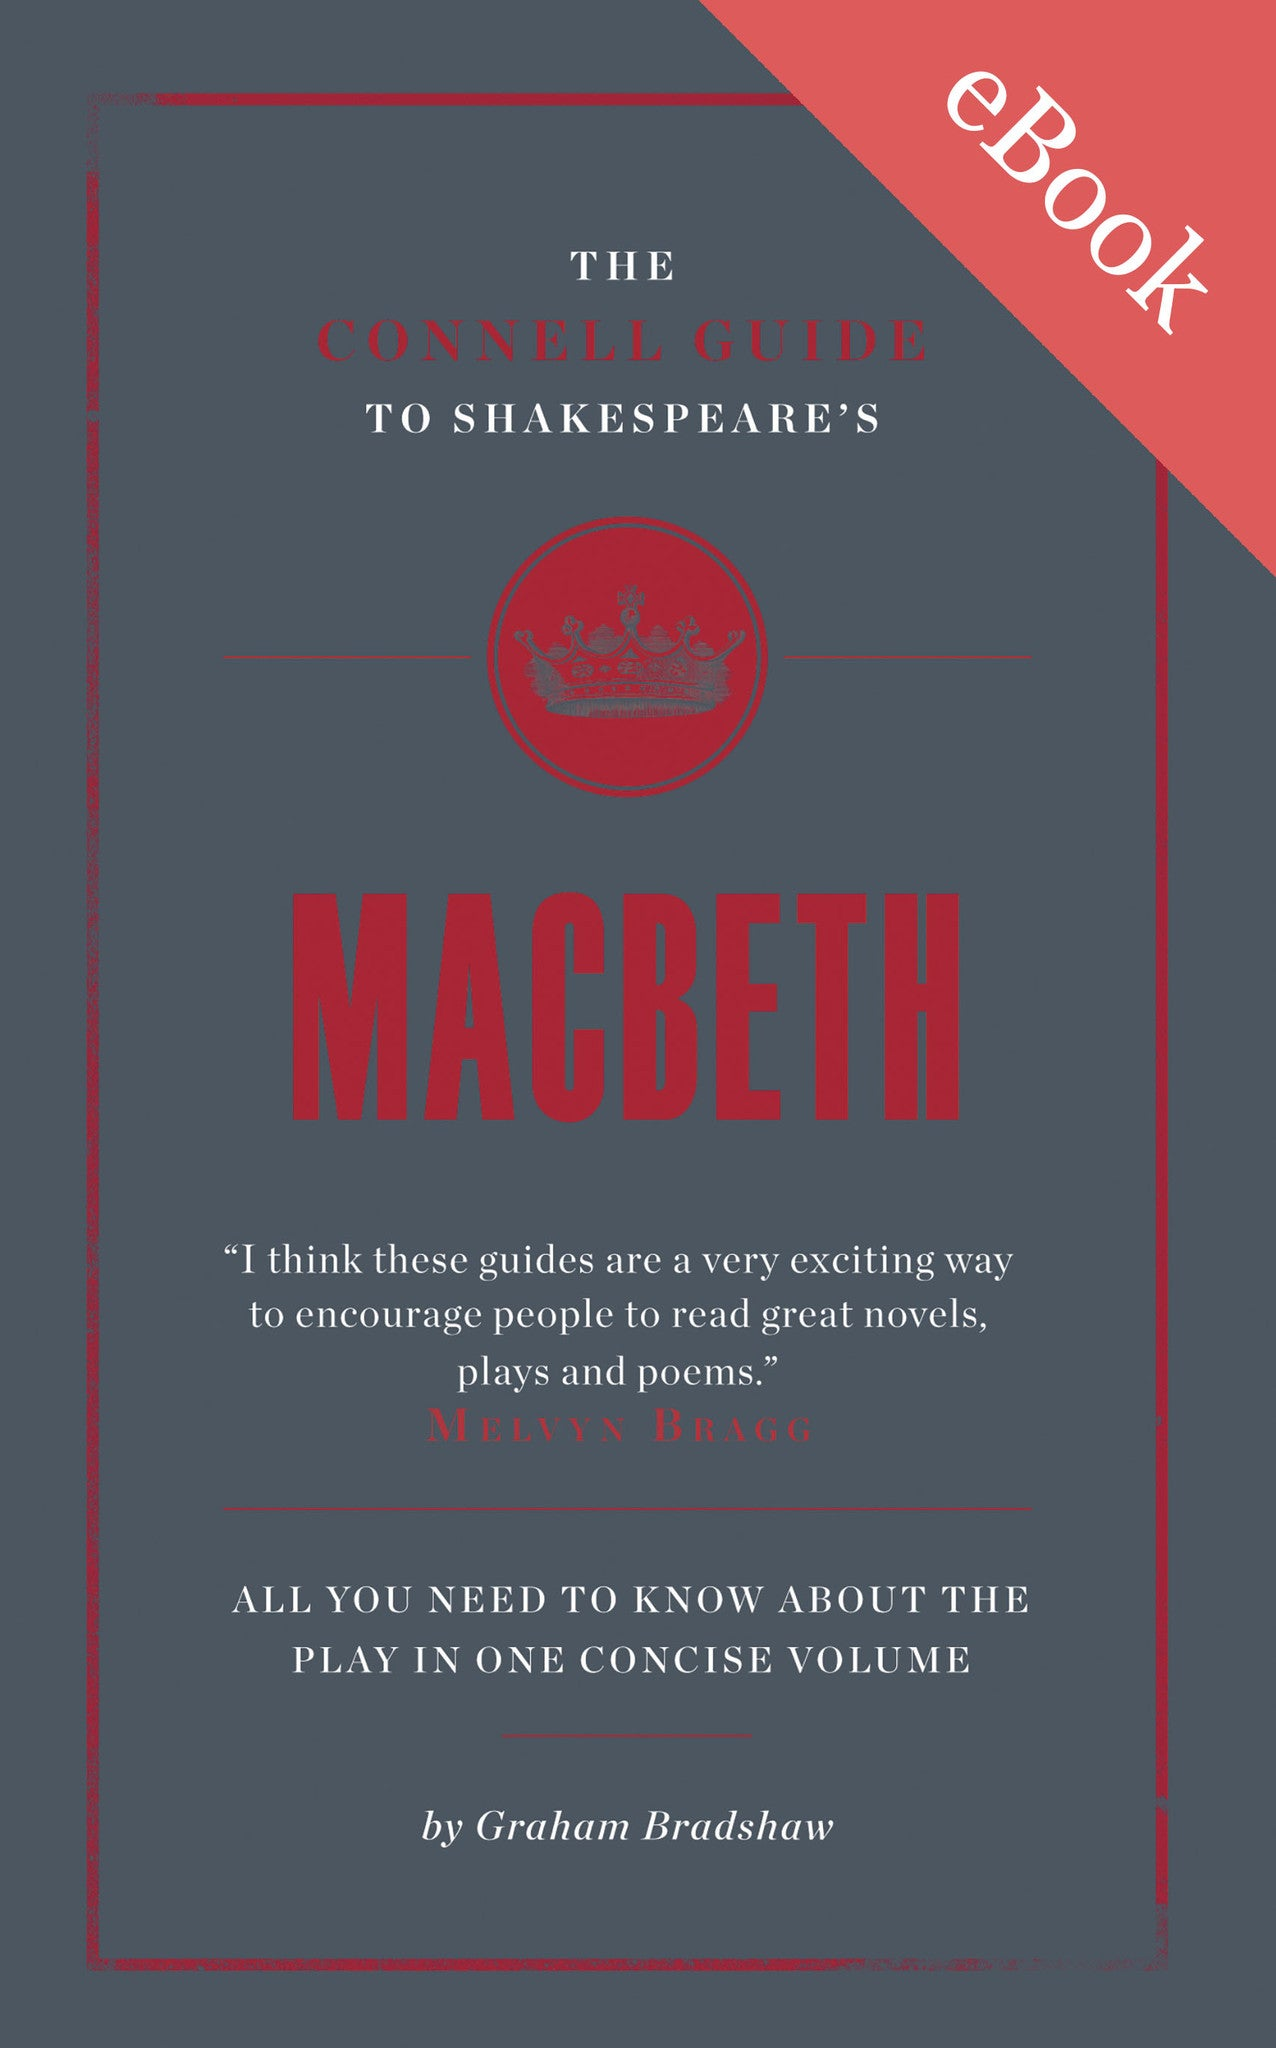 macbeth study guides Macbeth study guide macbeth is shakespeare's shortest tragedy, and very likely, the most reworked of all shakespeare's plays it is now assumed that some of the play was actually written by a contemporary of shakespeare, thomas middleton, and modern editors have found it necessary to rearranged lines they feel are otherwise disjointed and confusing.